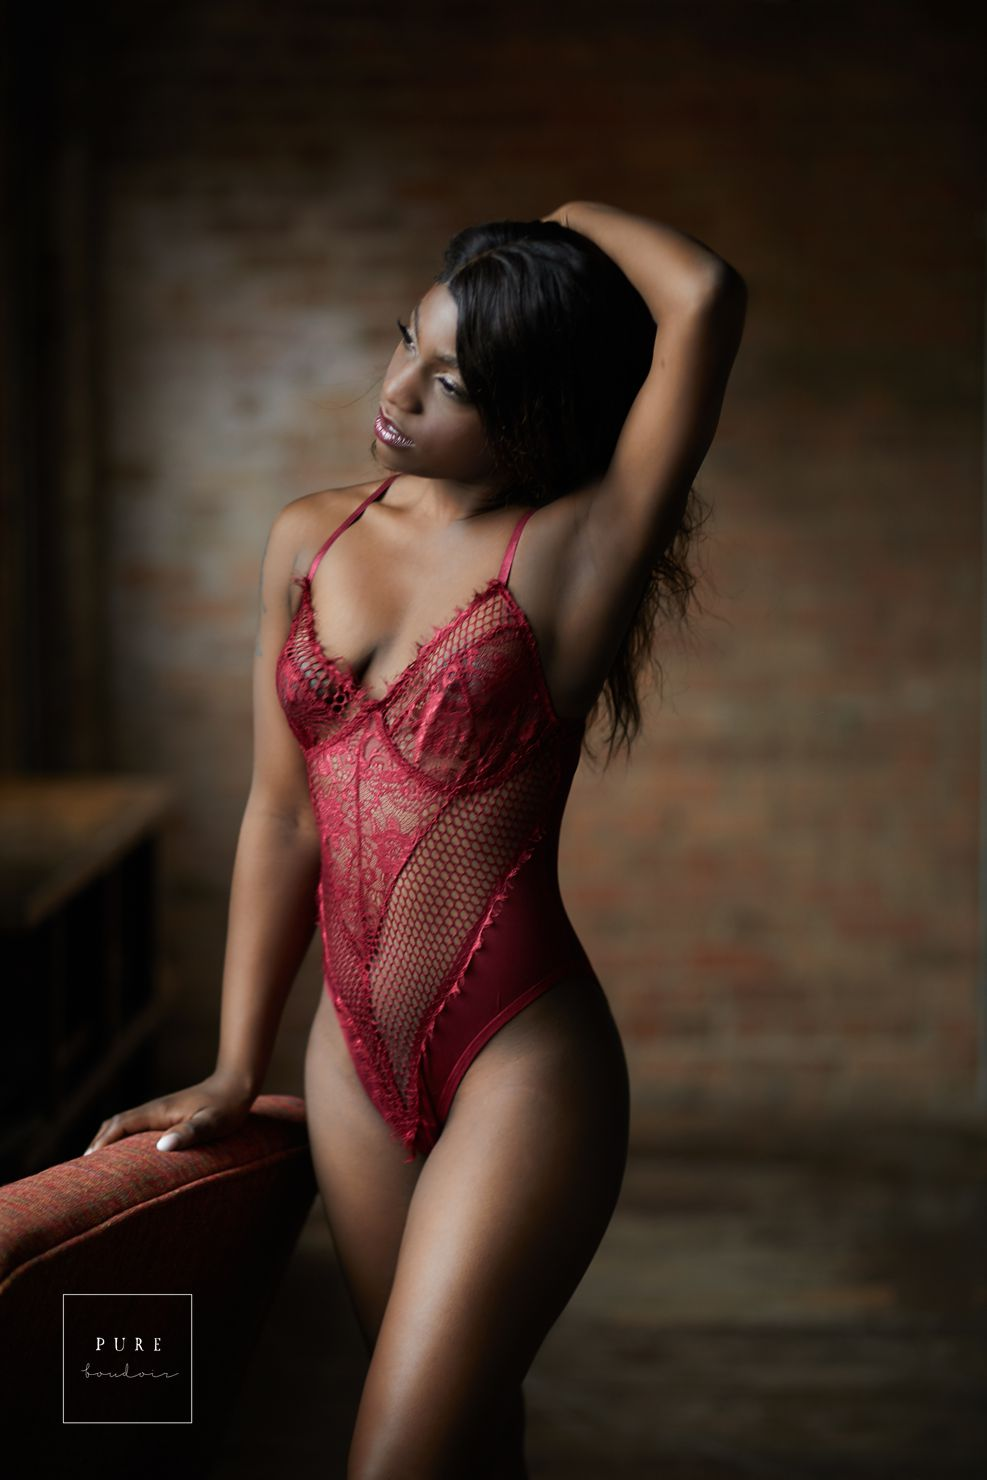 chicago boudoir photos lingerie - How to Find the Right Fit - Chicago Boudoir Photography